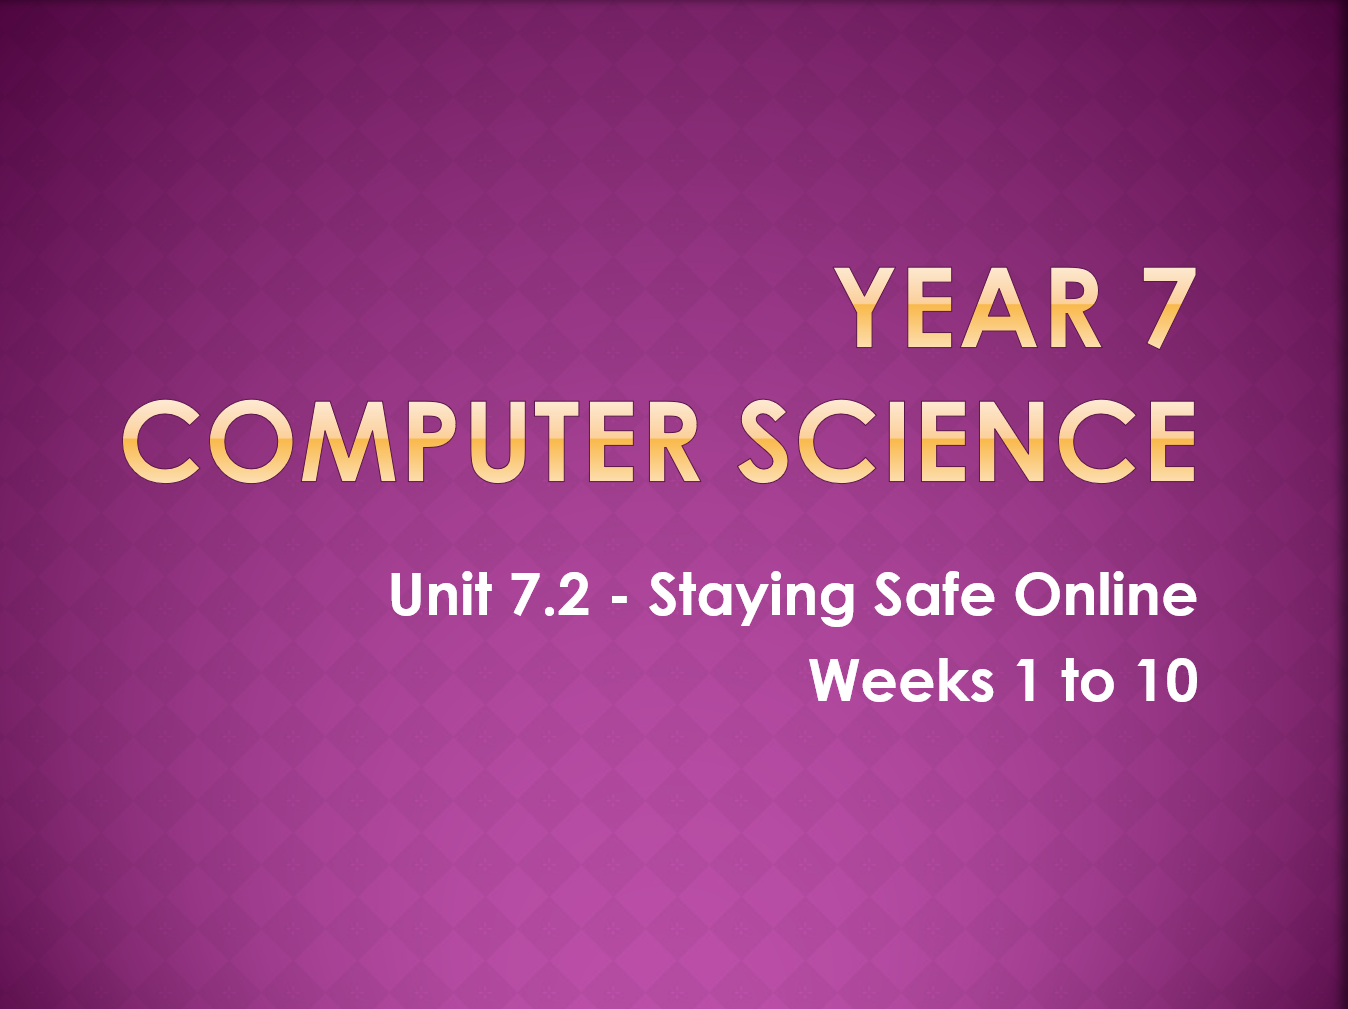 Complete Computer Science KS3 SOW: Staying Safe Online